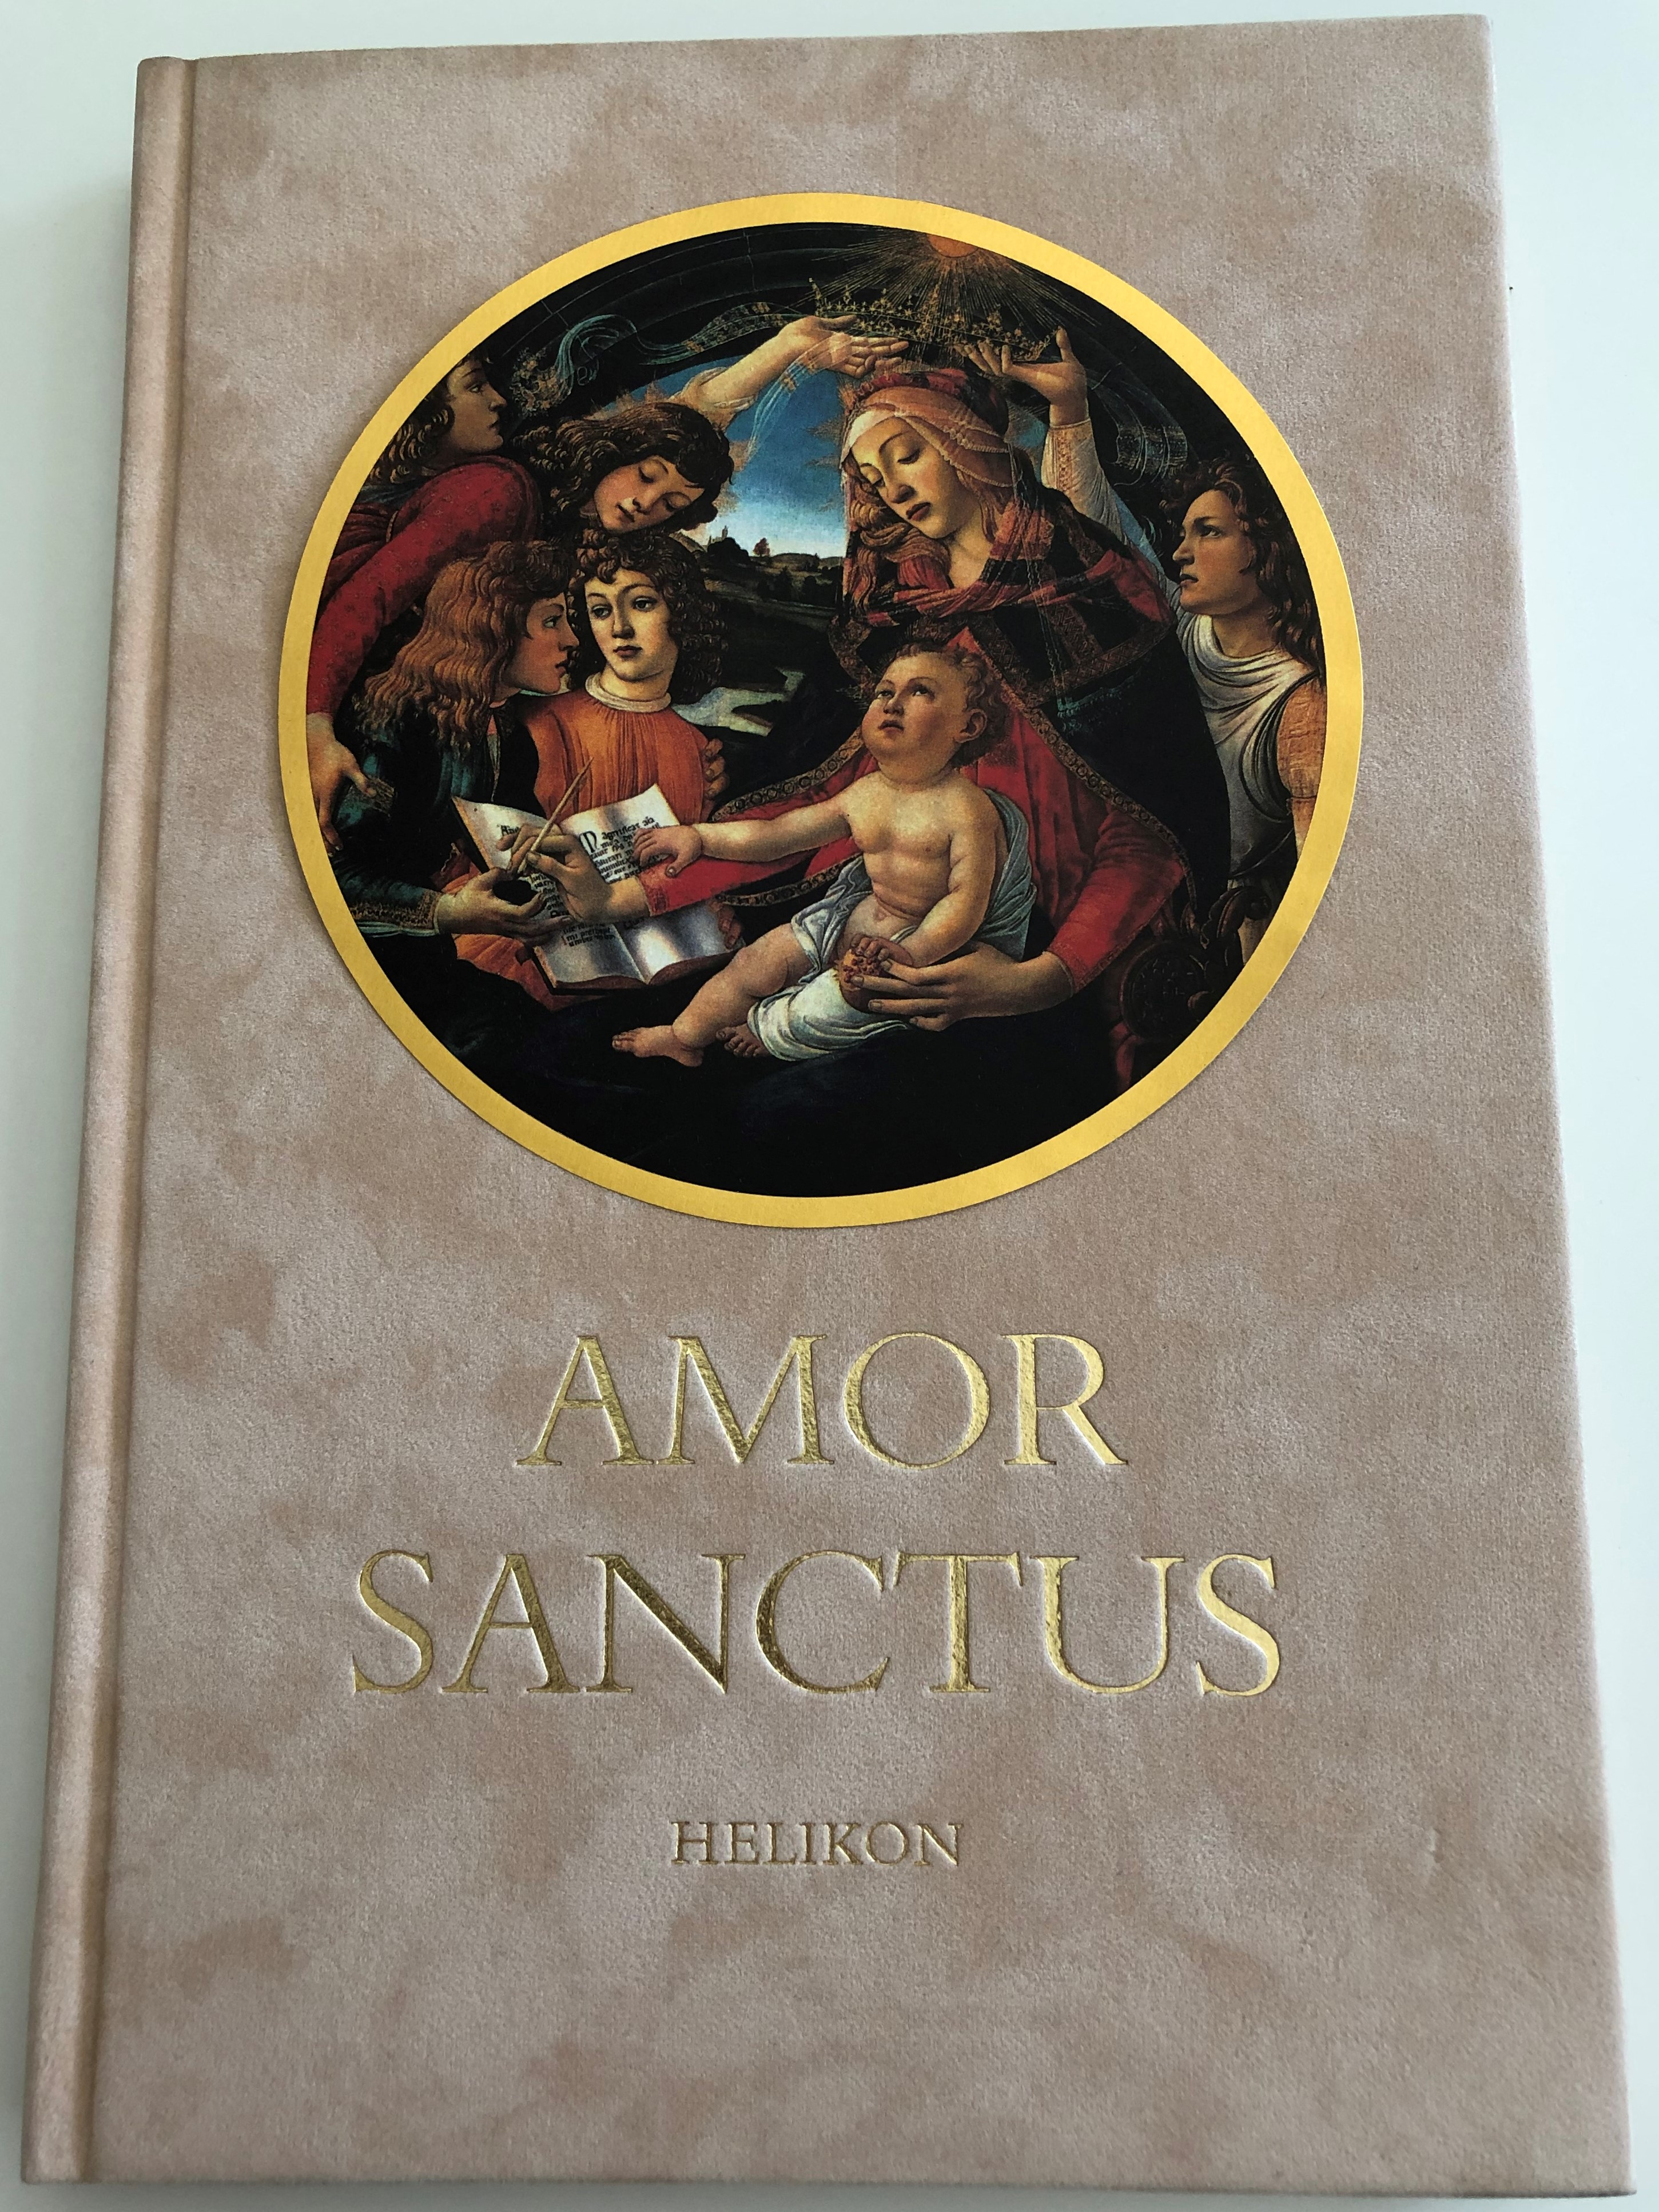 amor-sanctus-medieval-hymns-in-latin-and-hungarian-szent-szeretet-k-nyve-translated-and-interpreted-by-babits-mih-ly-k-z-pkori-himnuszok-latinul-s-magyarul-hardcover-1988-helikon-he213-1-.jpg